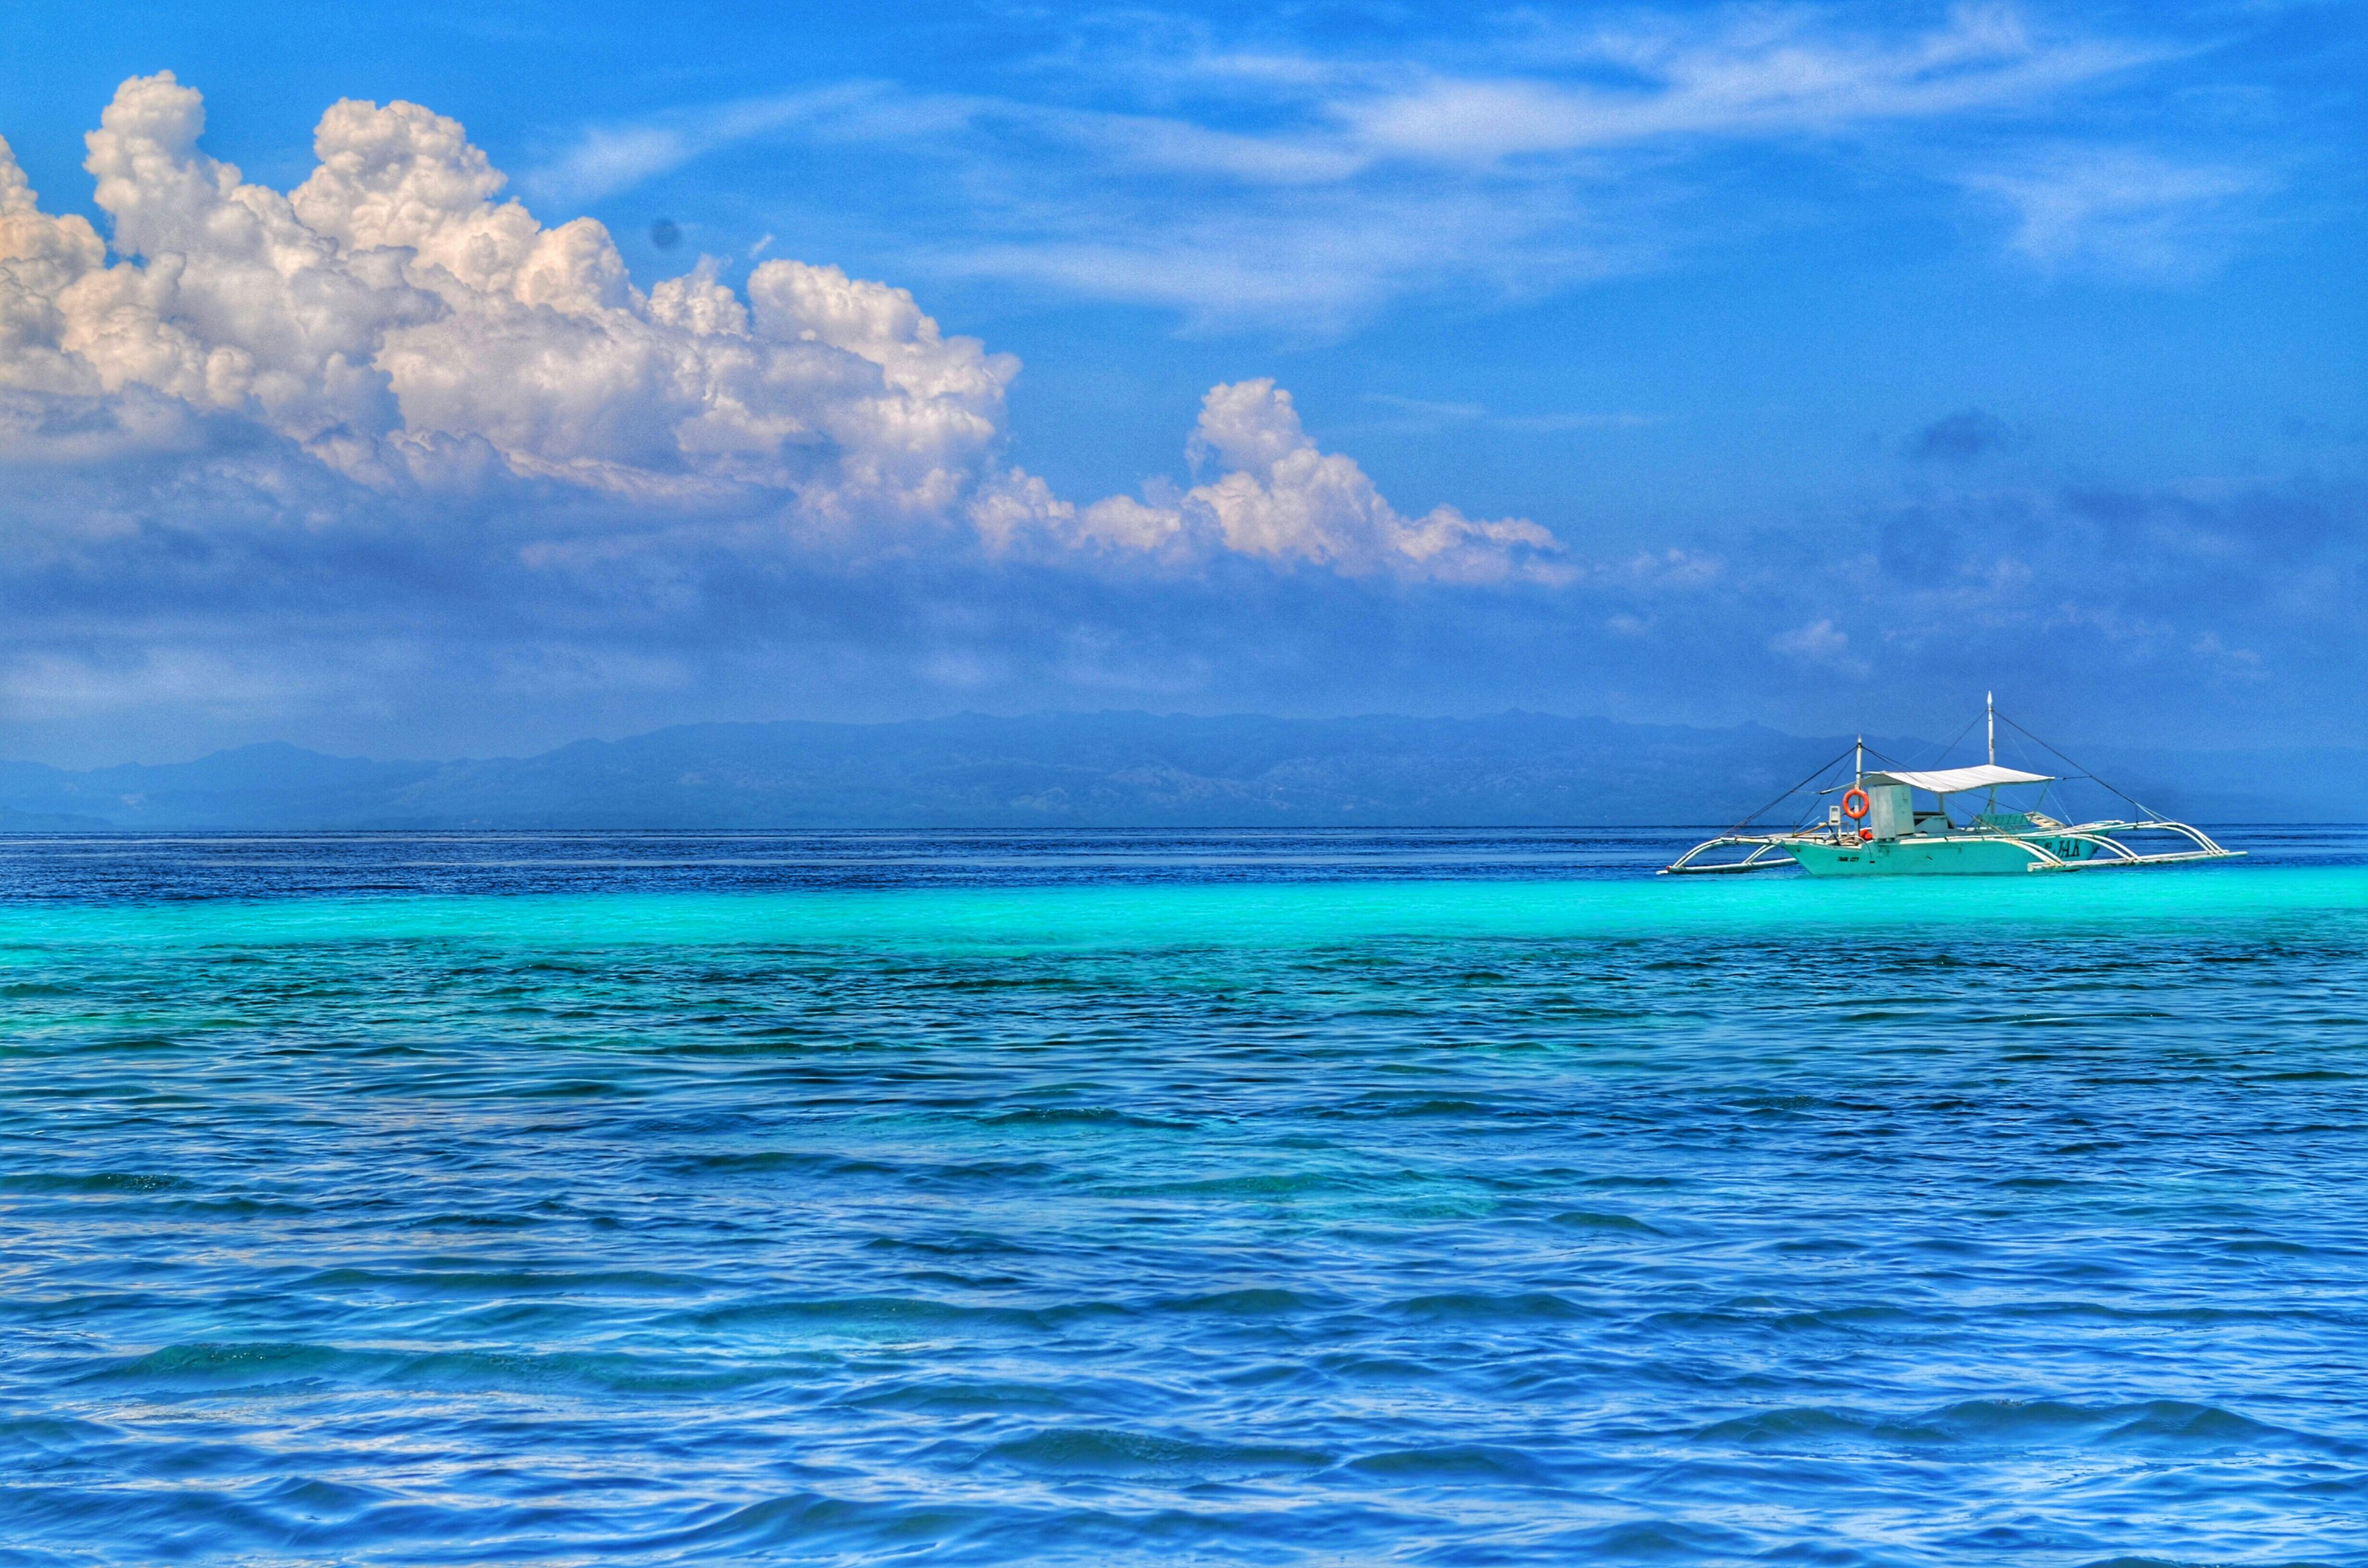 sea, water, sky, blue, waterfront, tranquil scene, horizon over water, tranquility, scenics, nautical vessel, cloud - sky, beauty in nature, rippled, cloud, nature, transportation, boat, idyllic, cloudy, seascape